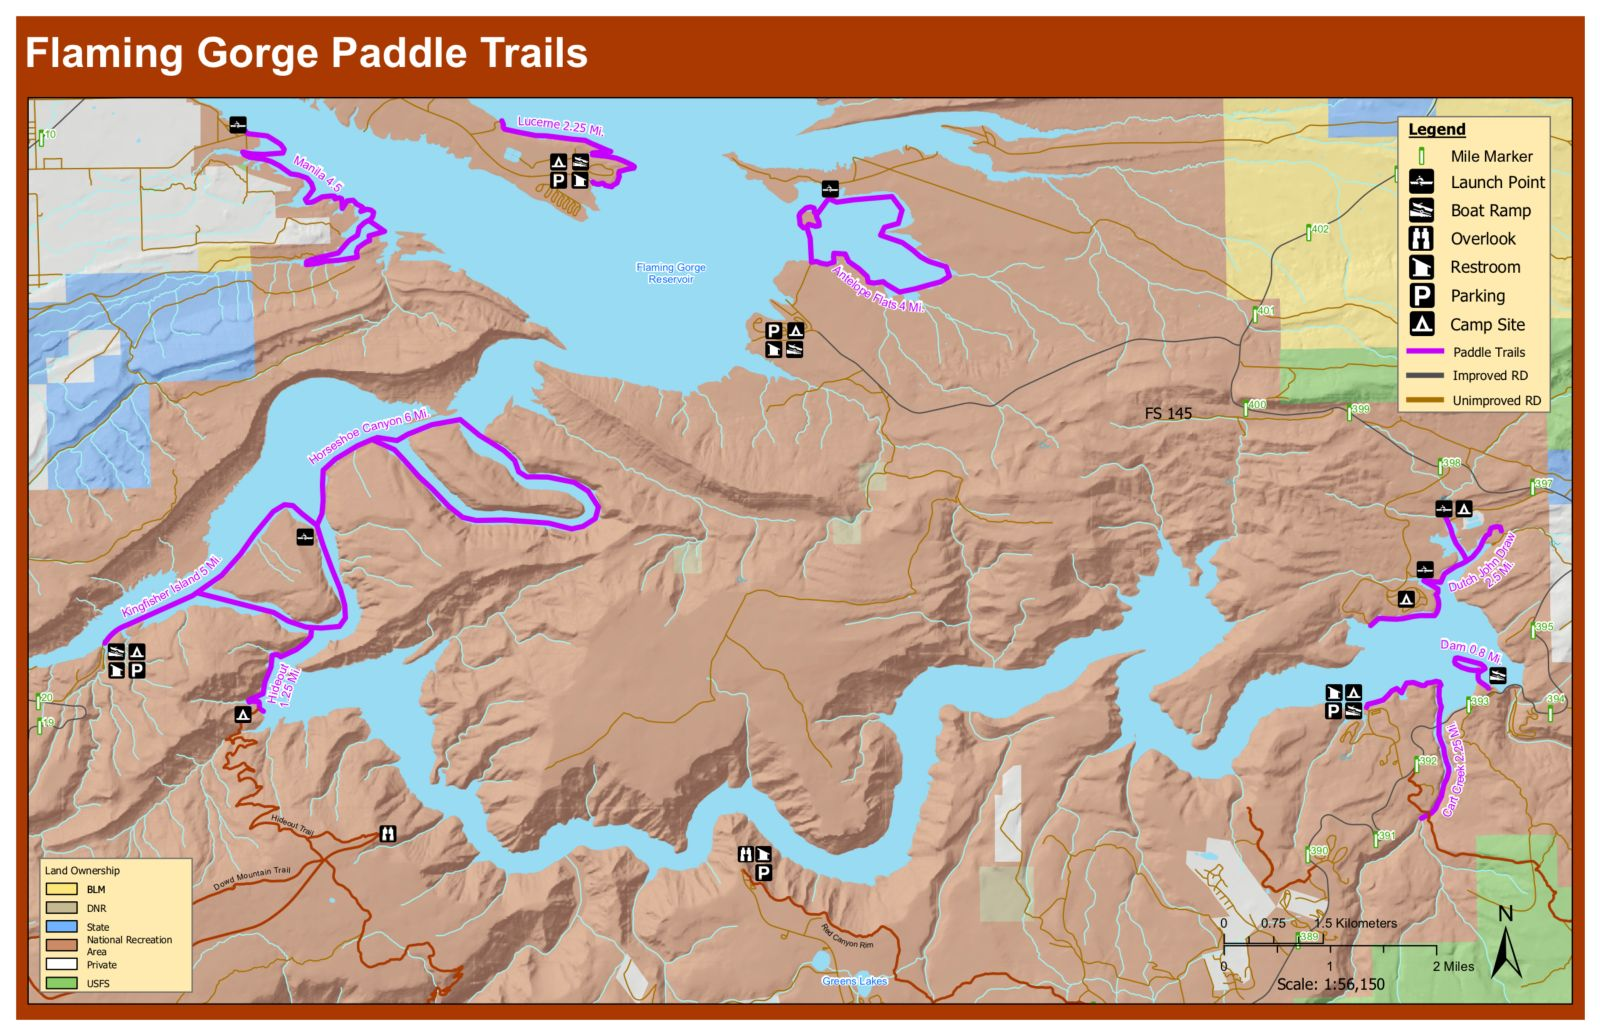 flaming gorge paddling trails Map